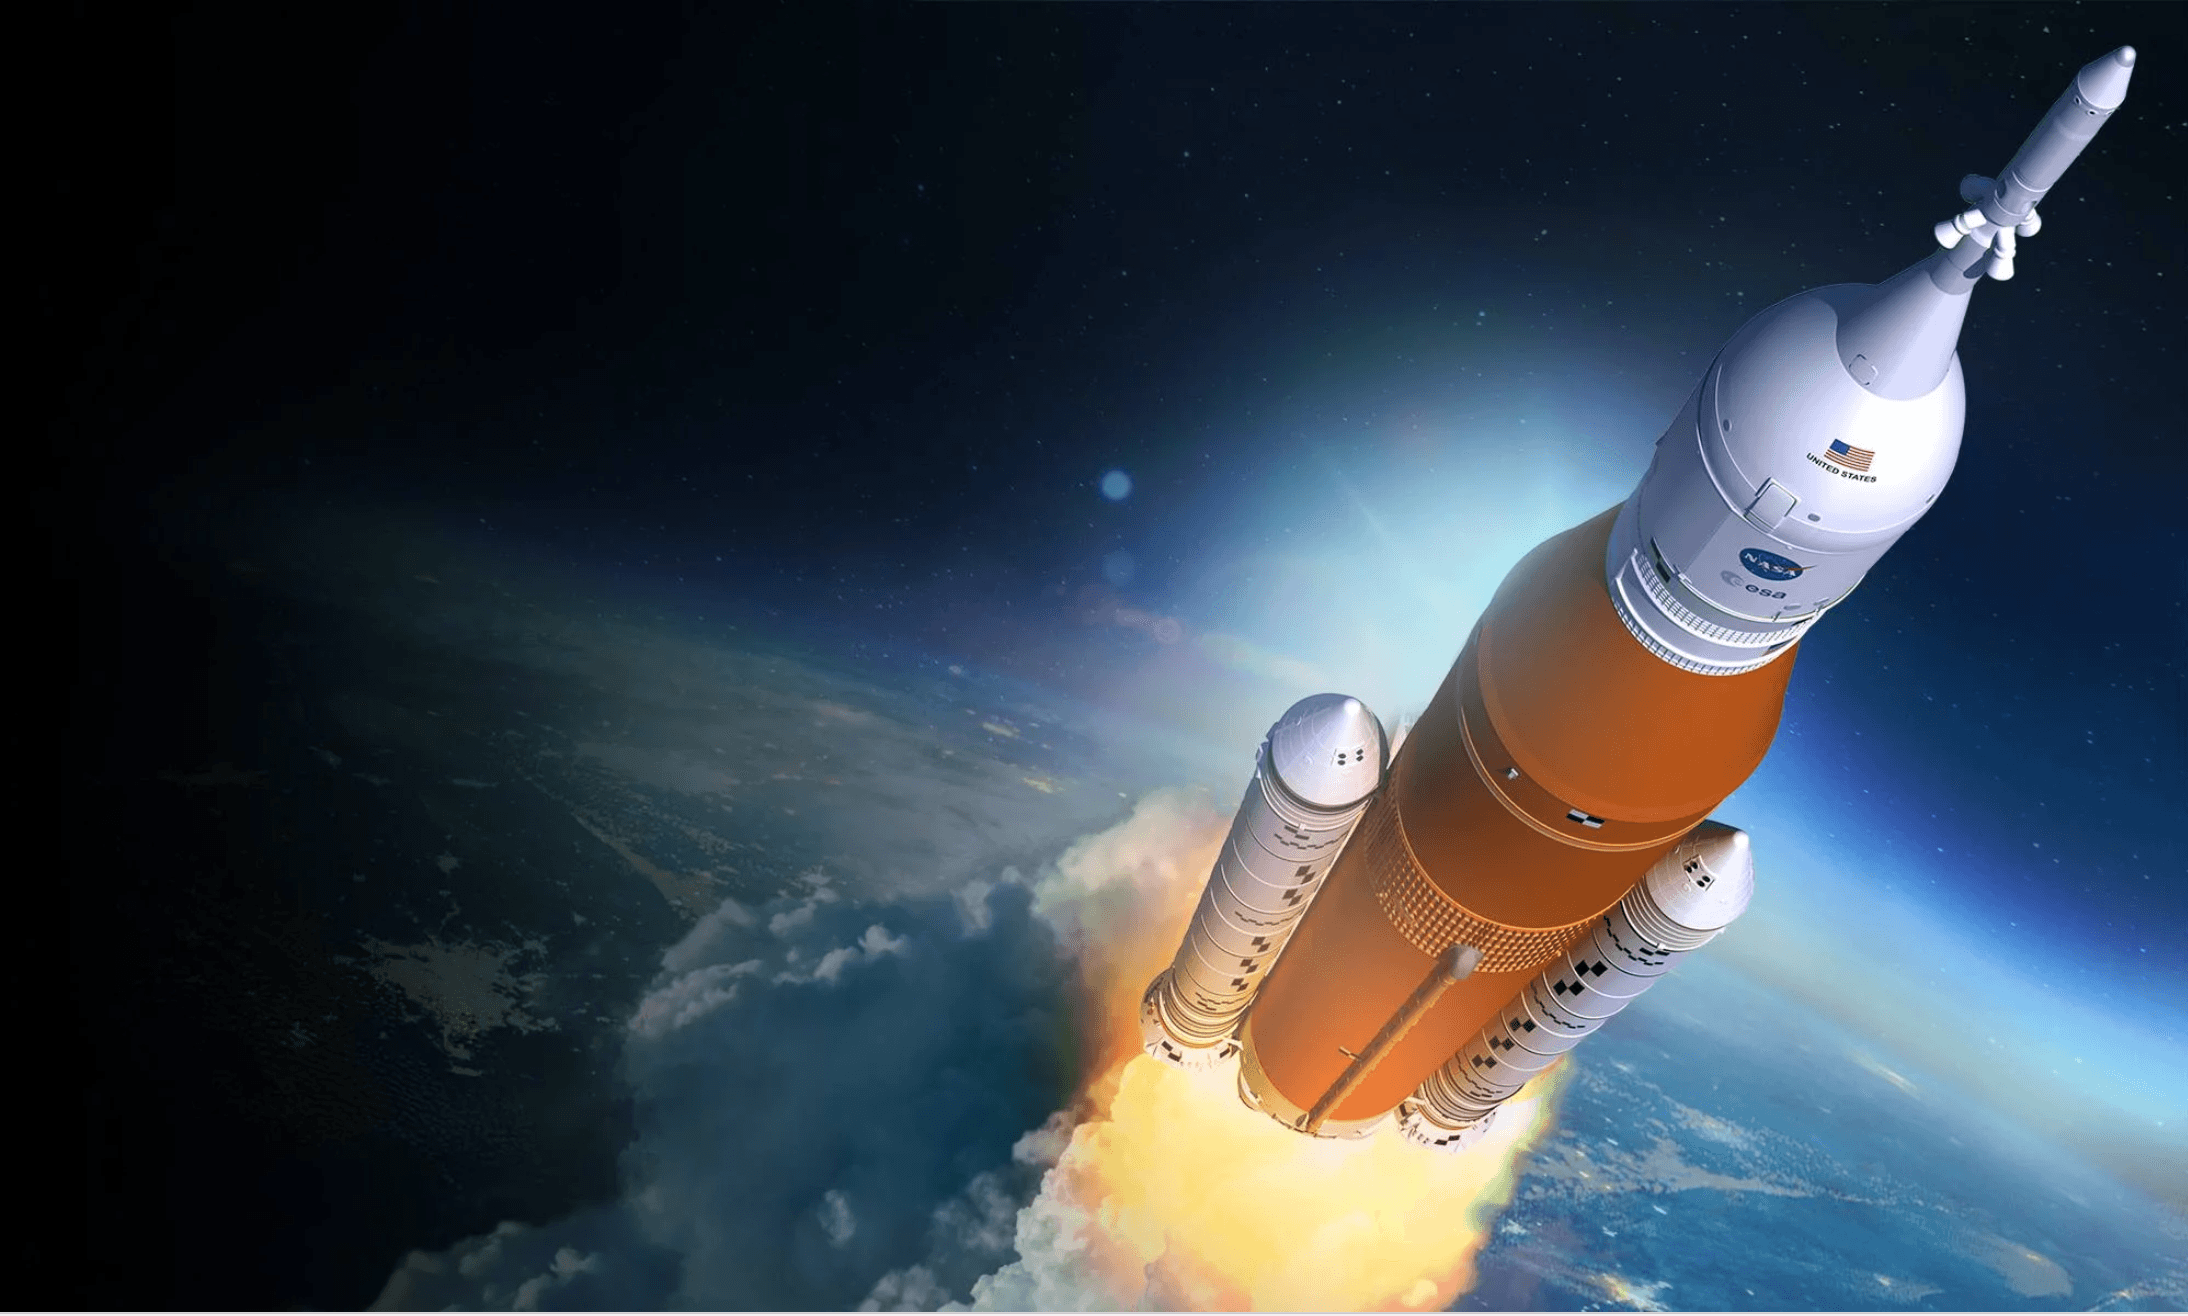 Top 5 Reasons the SLS Is the Best Rocket to Send Americans to Mars